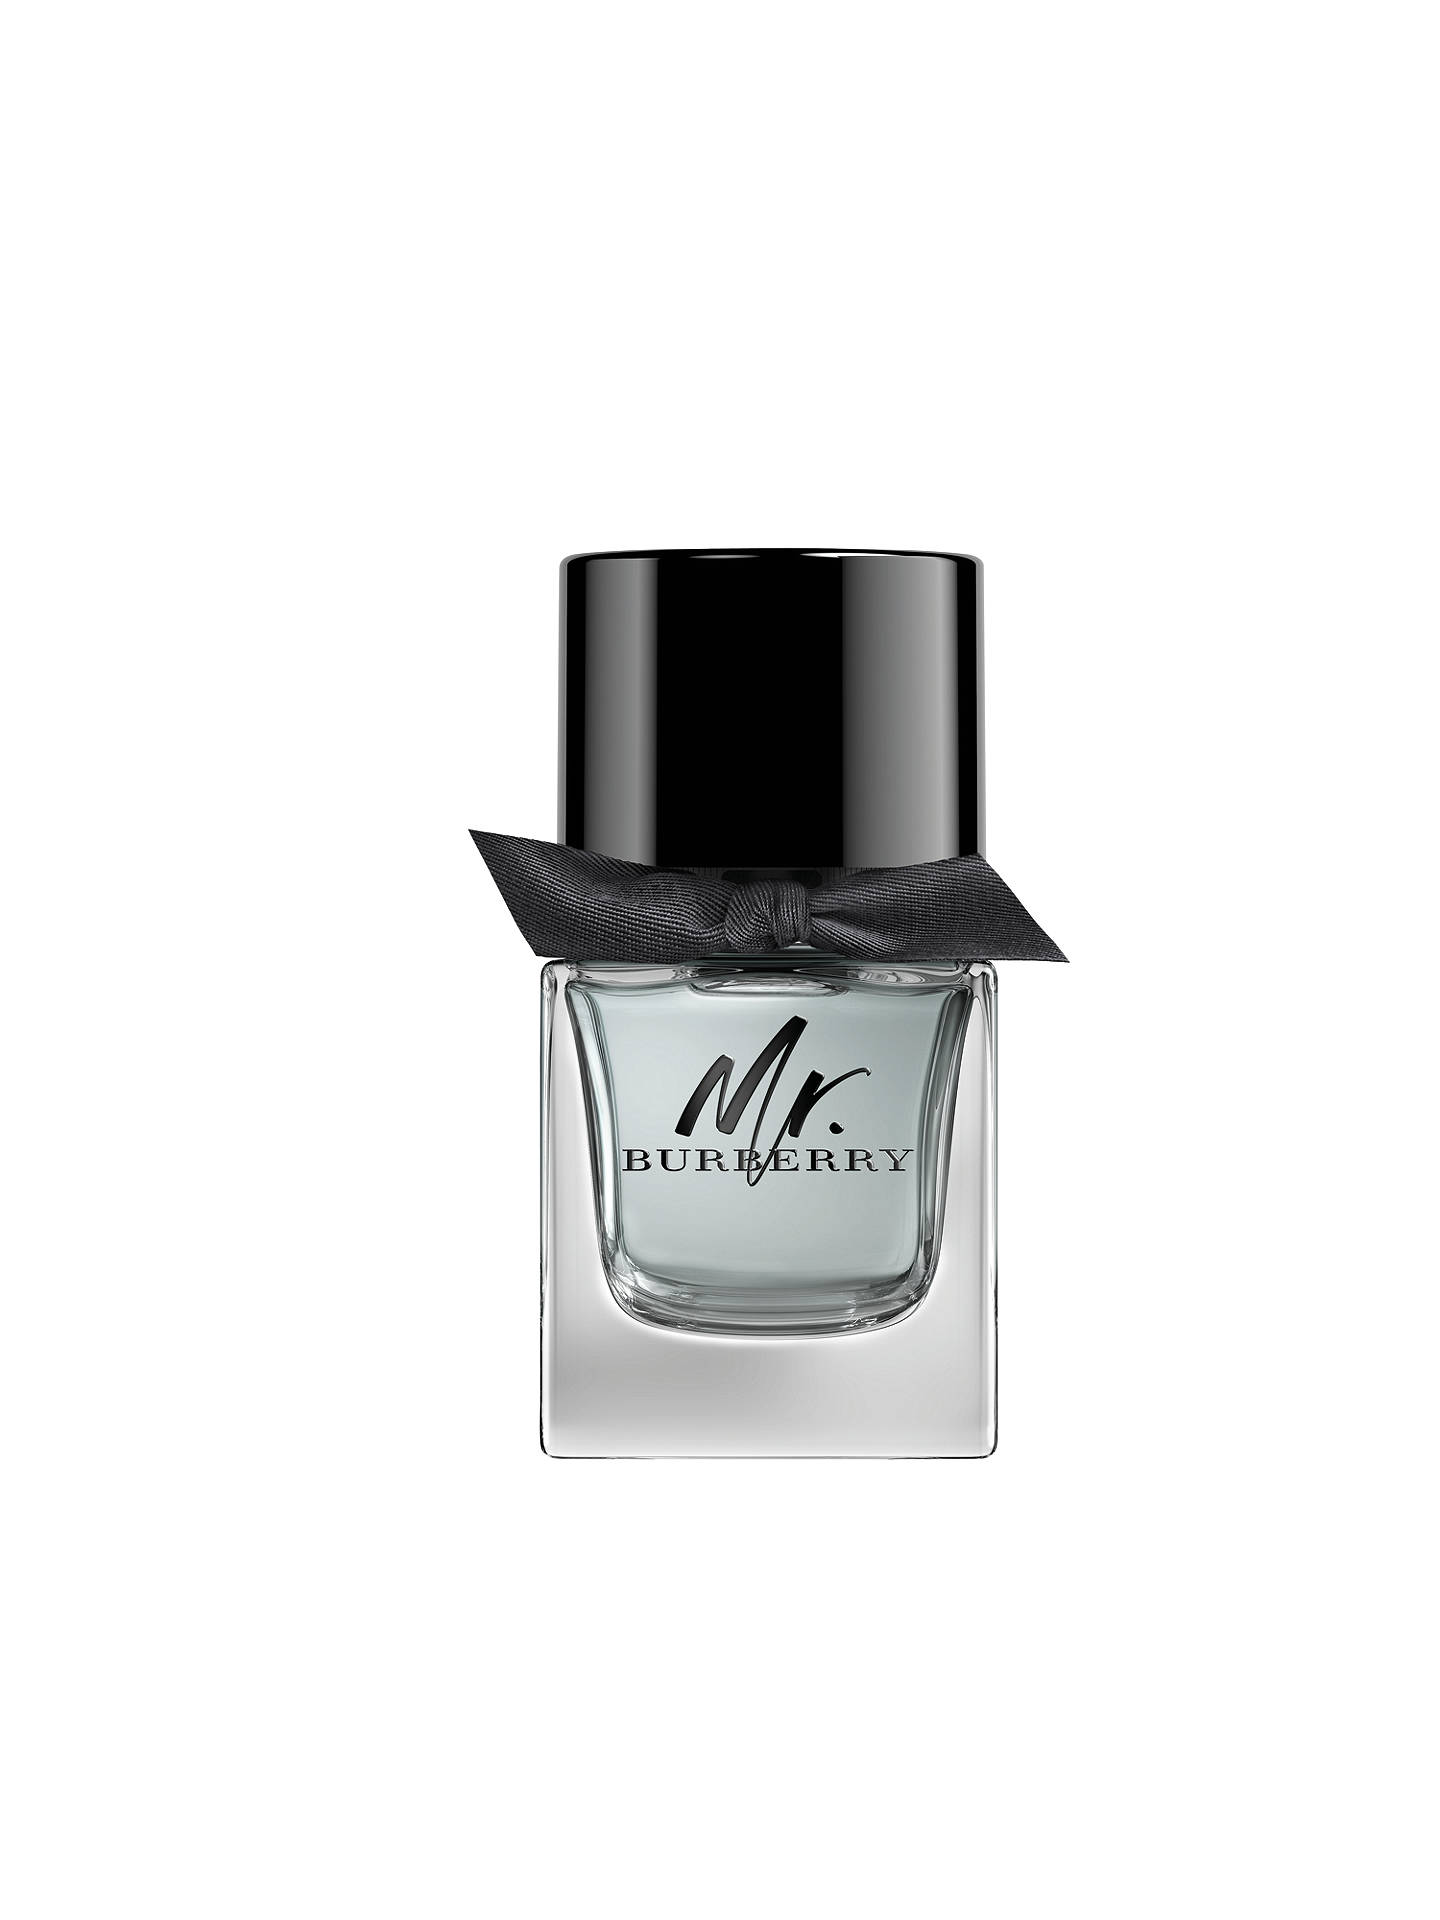 BuyBurberry Mr. Burberry Eau de Toilette, 50ml Online at johnlewis.com